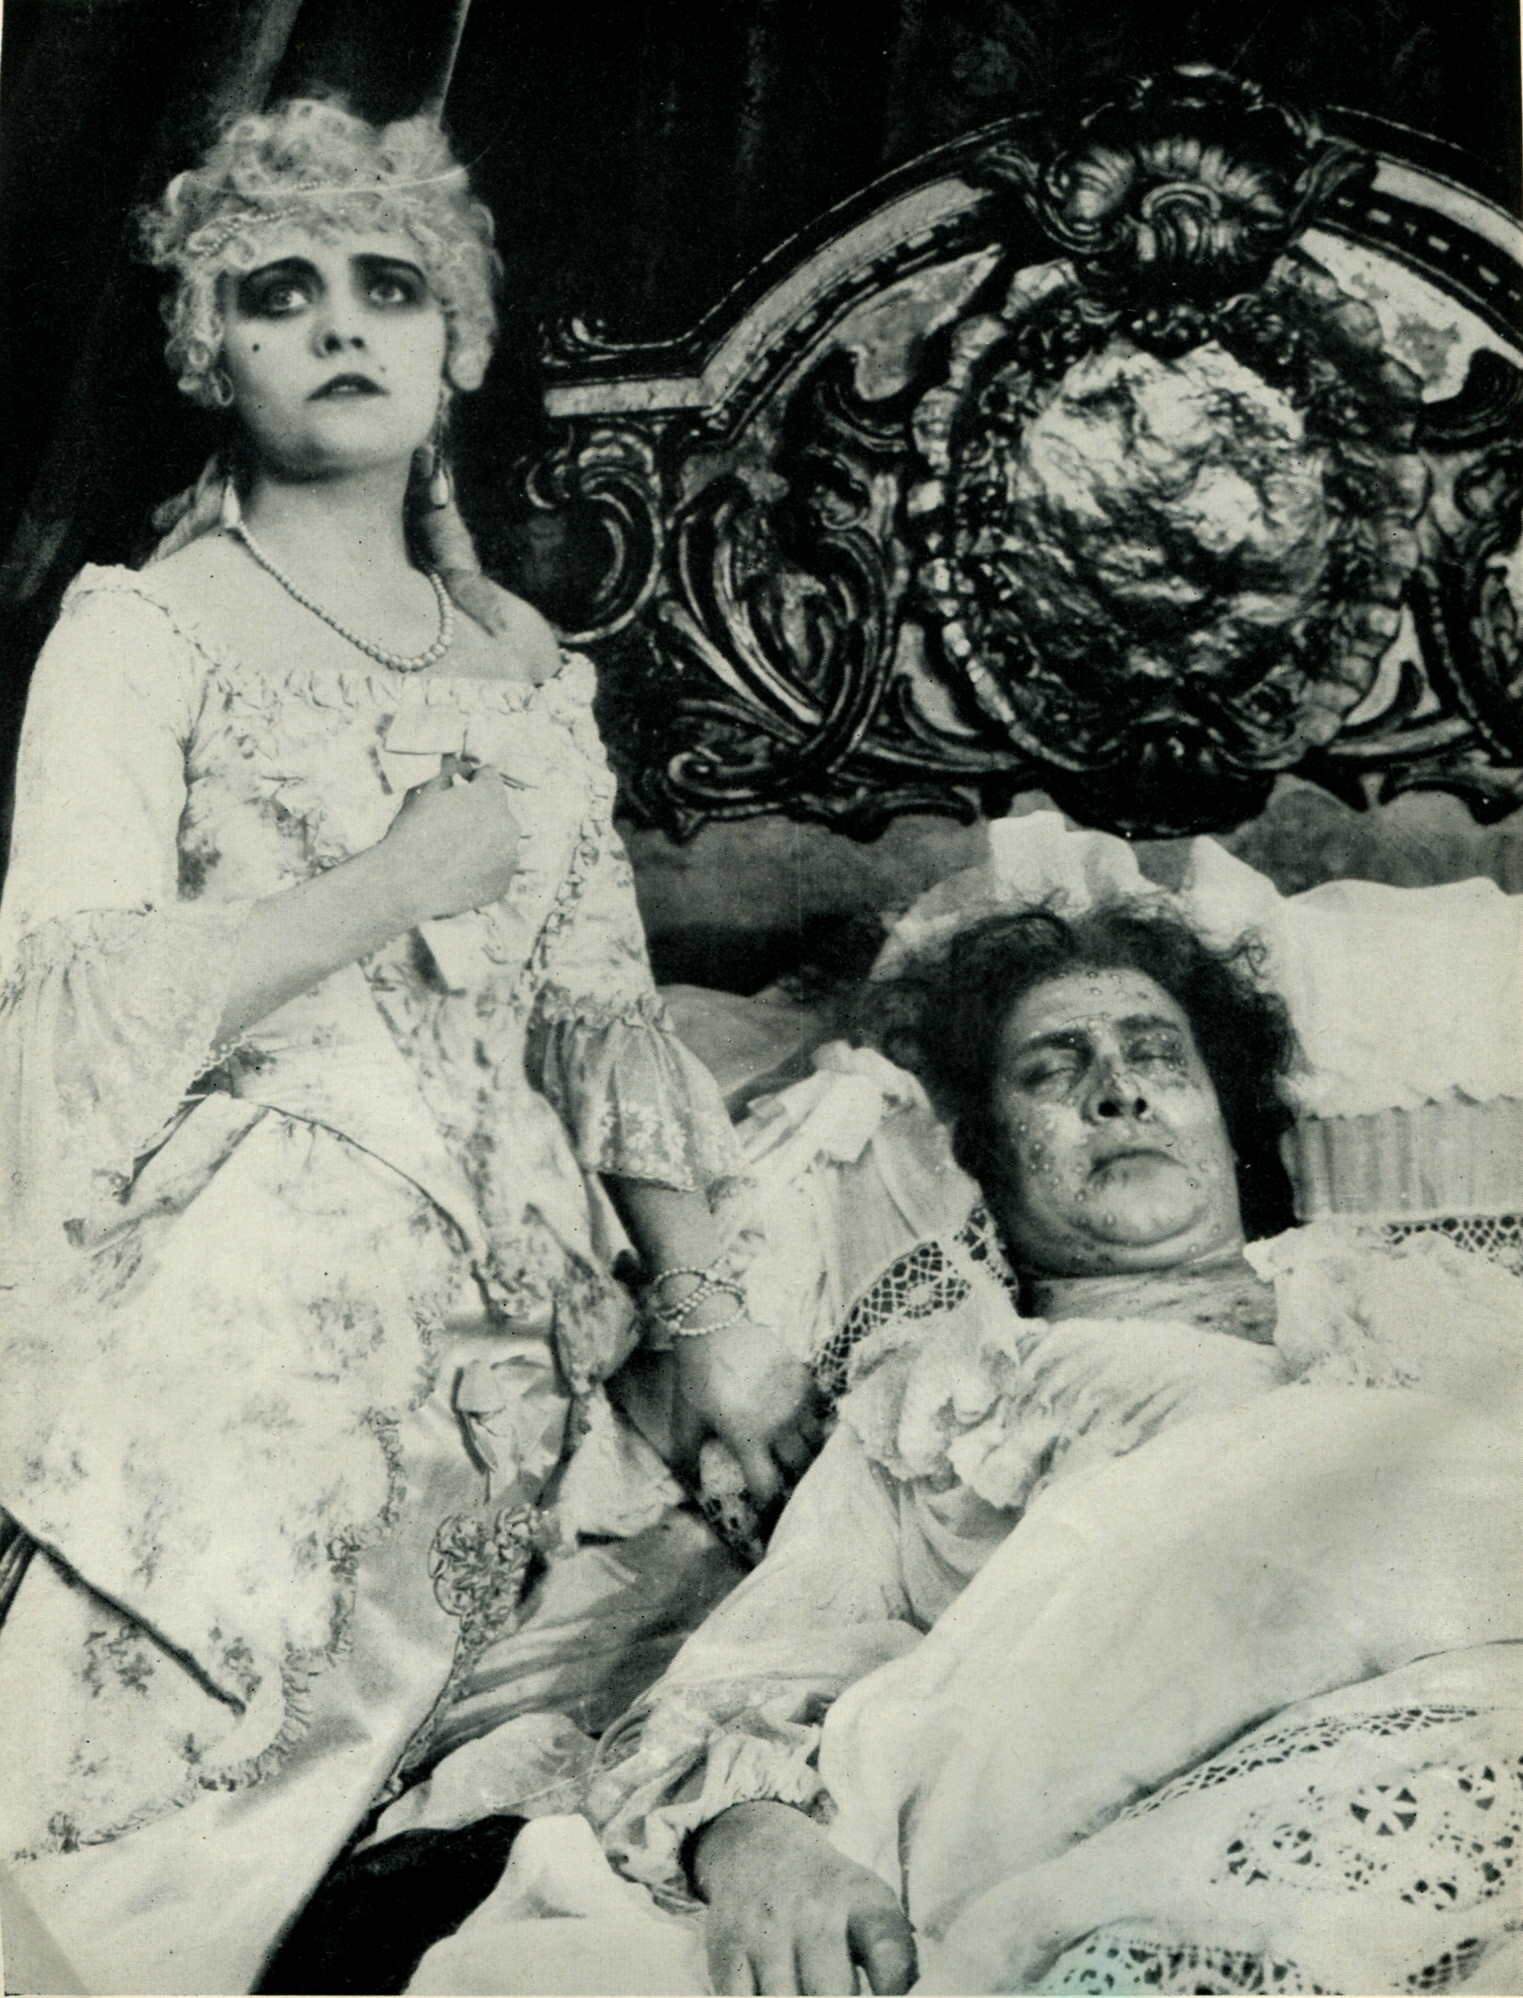 Emil Jannings and Pola Negri in Madame DuBarry (1919)